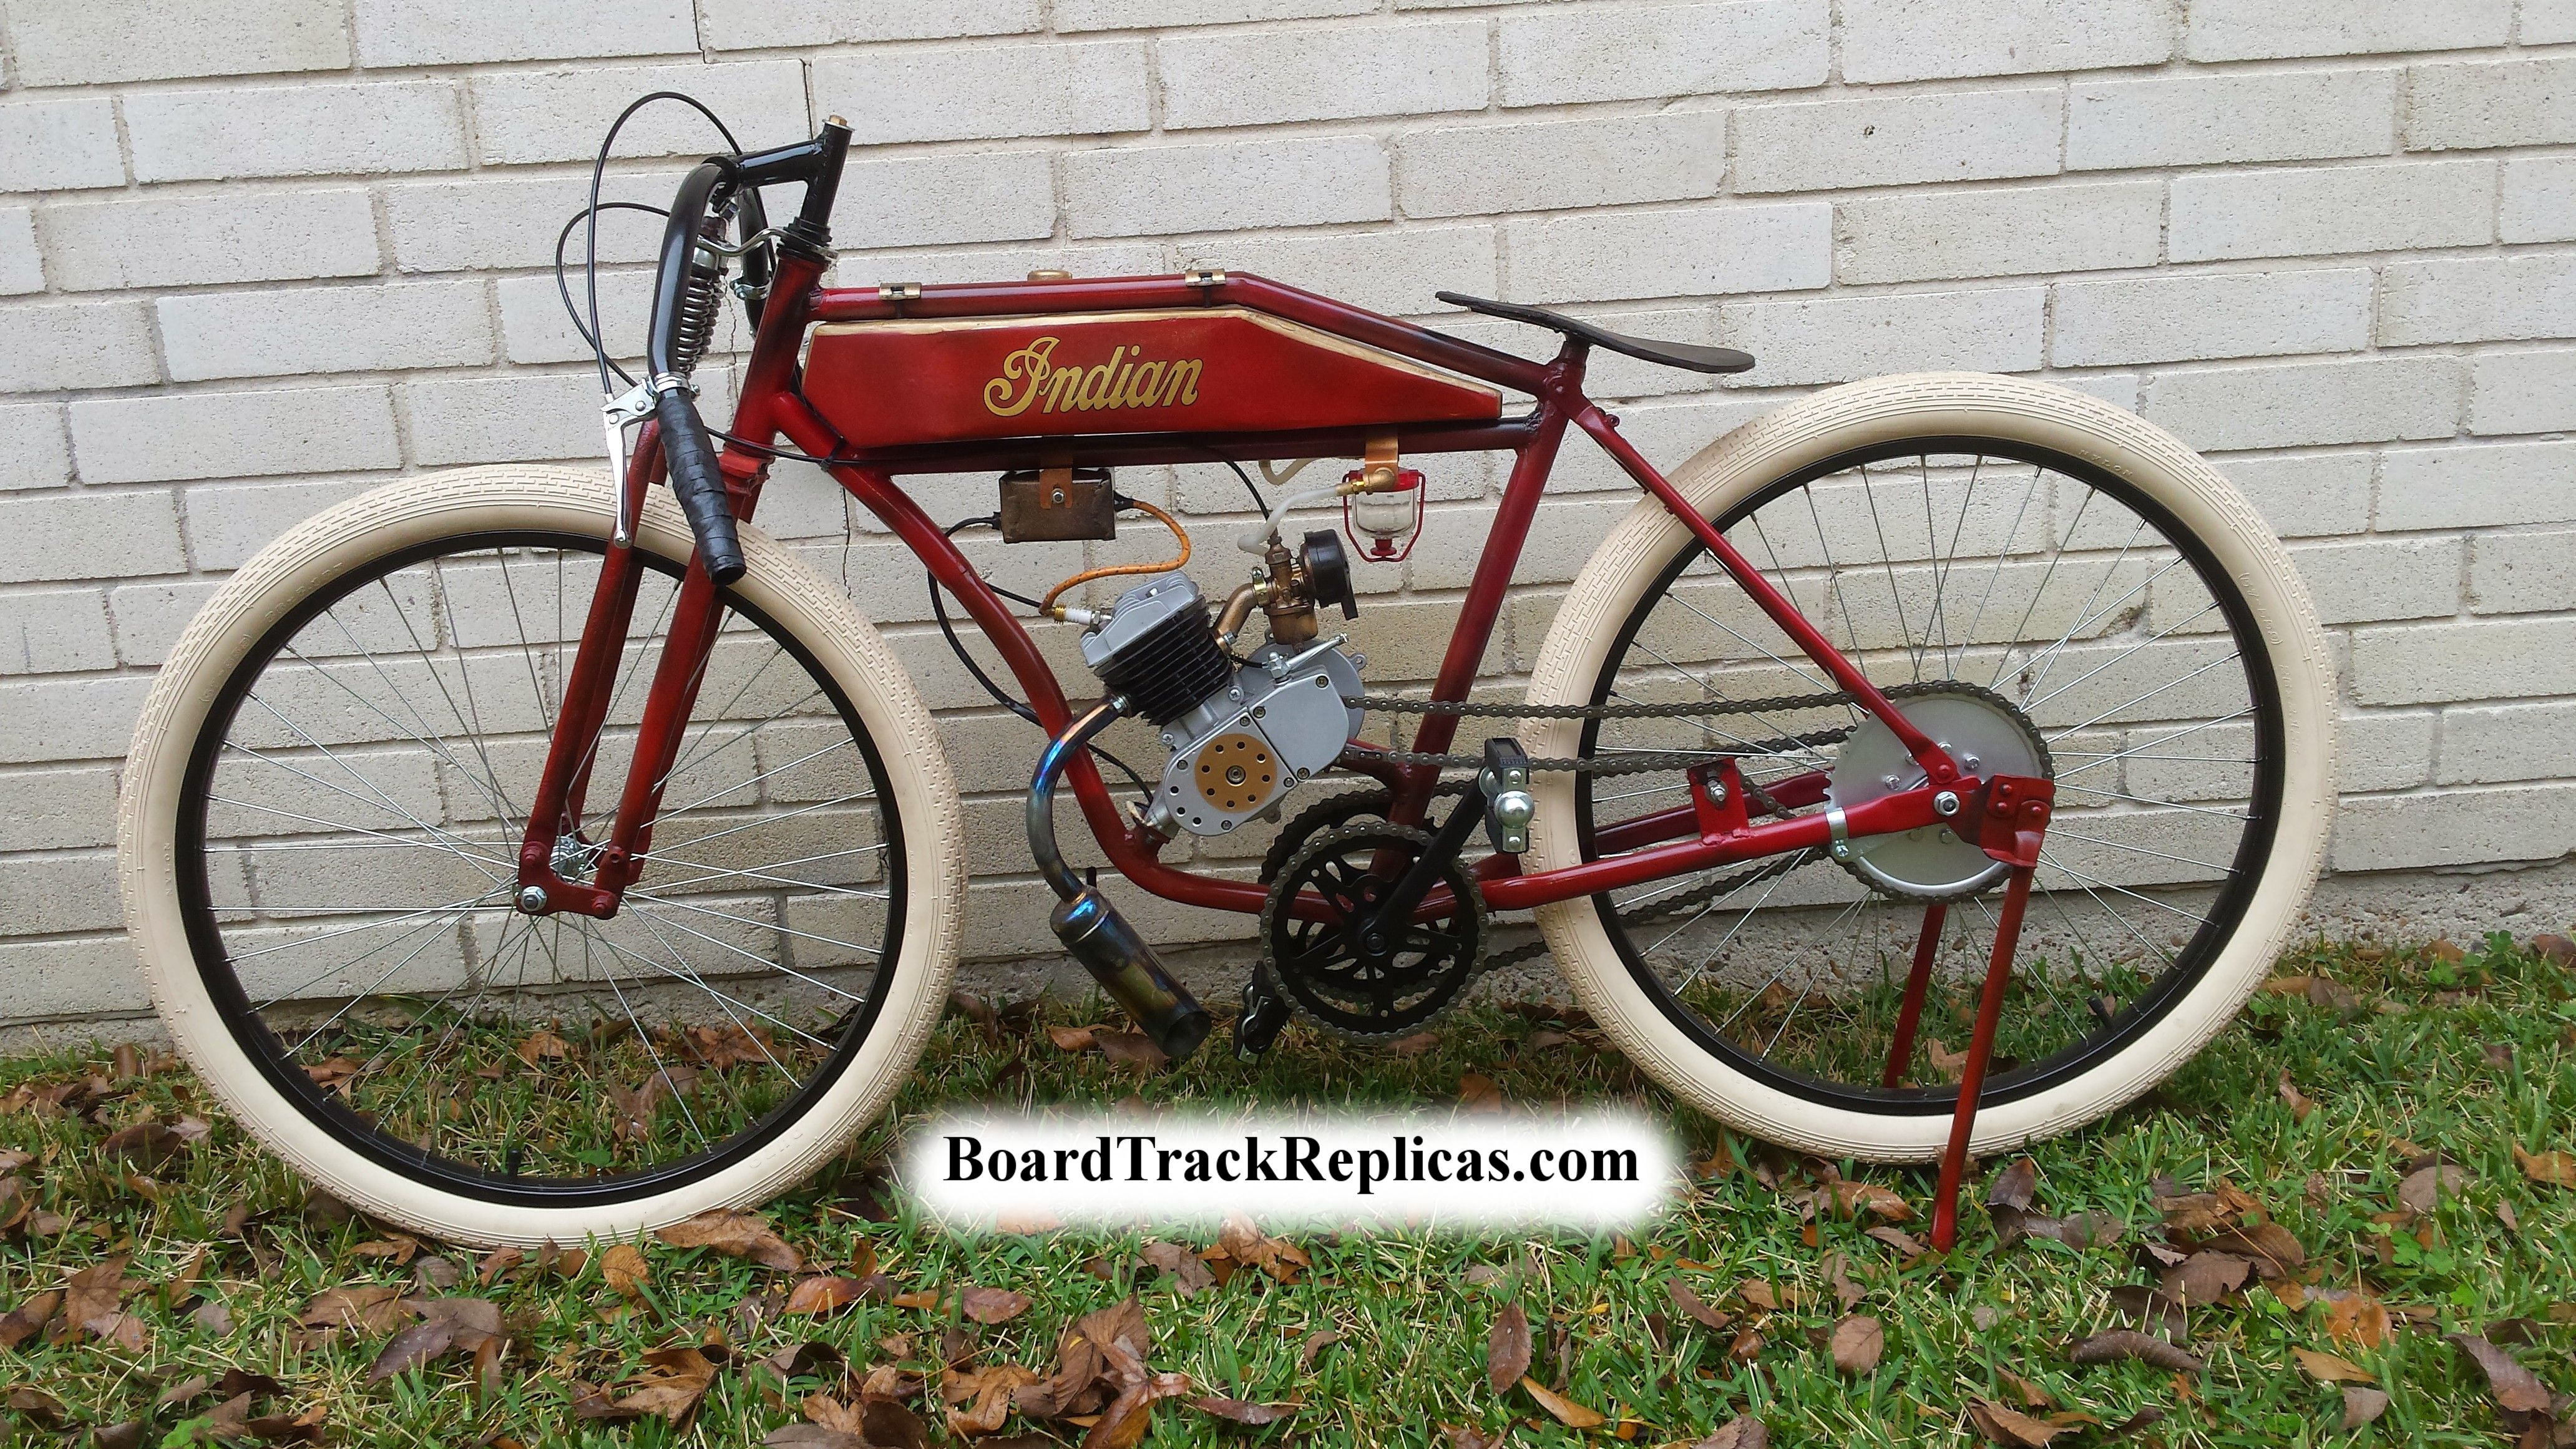 Deluxe Indian Board Track Replica Racer $3500 Most frames will be ...